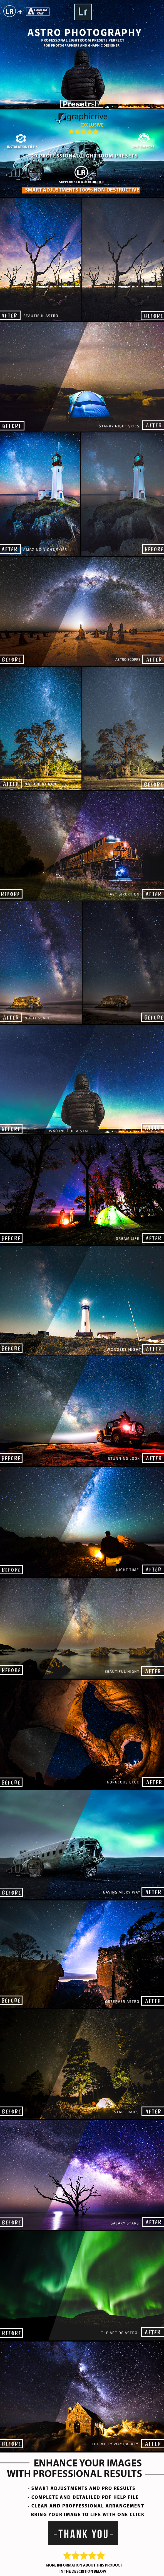 20 Pro Astrophotography Lightroom Presets - Lightroom Presets Add-ons